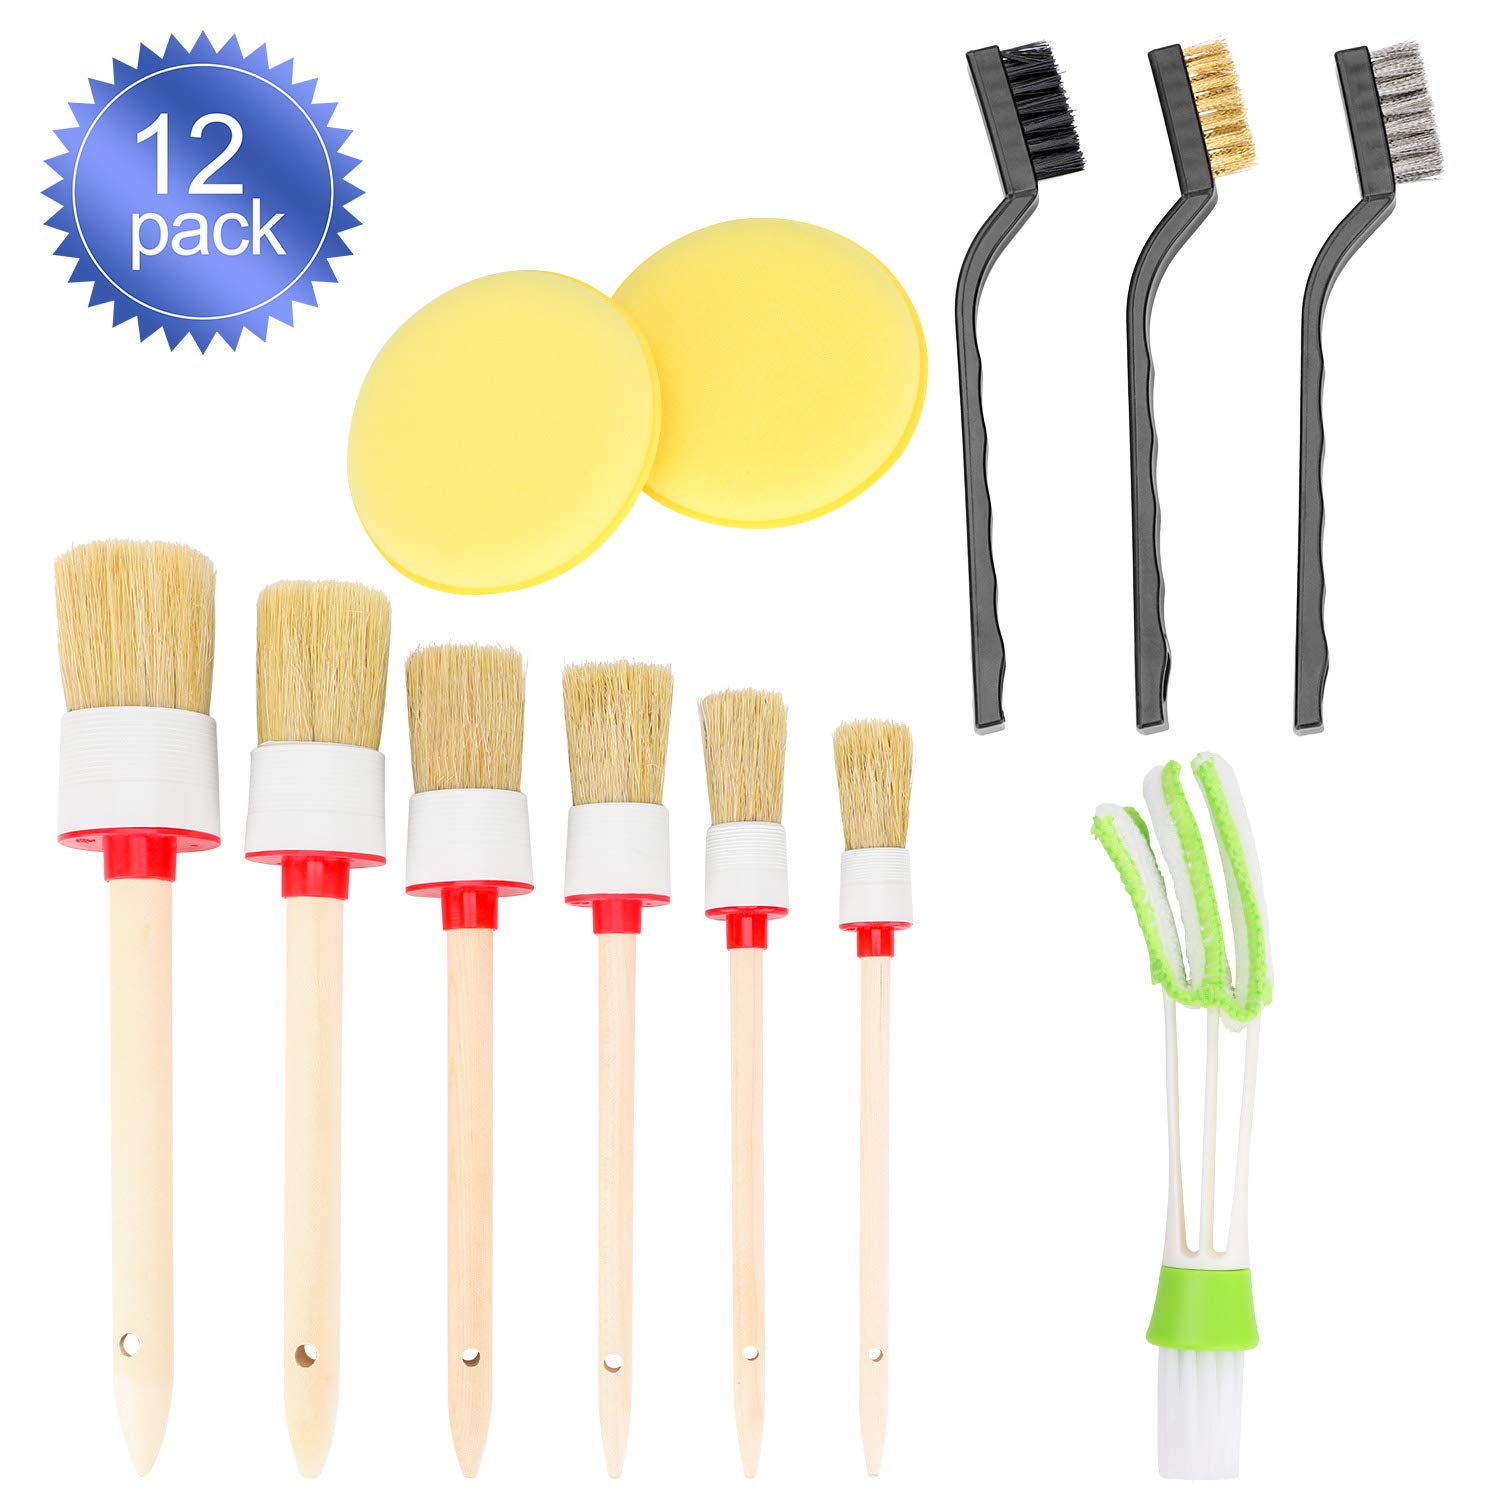 Oumers 12pcs Auto Detailing Brush Kit, Car Cleaning Brush Set Car Cleaning Tools Natural Hog Hair Brush Kit for Car Cleaning Vents, Dash, Trim, Seats, Wheels